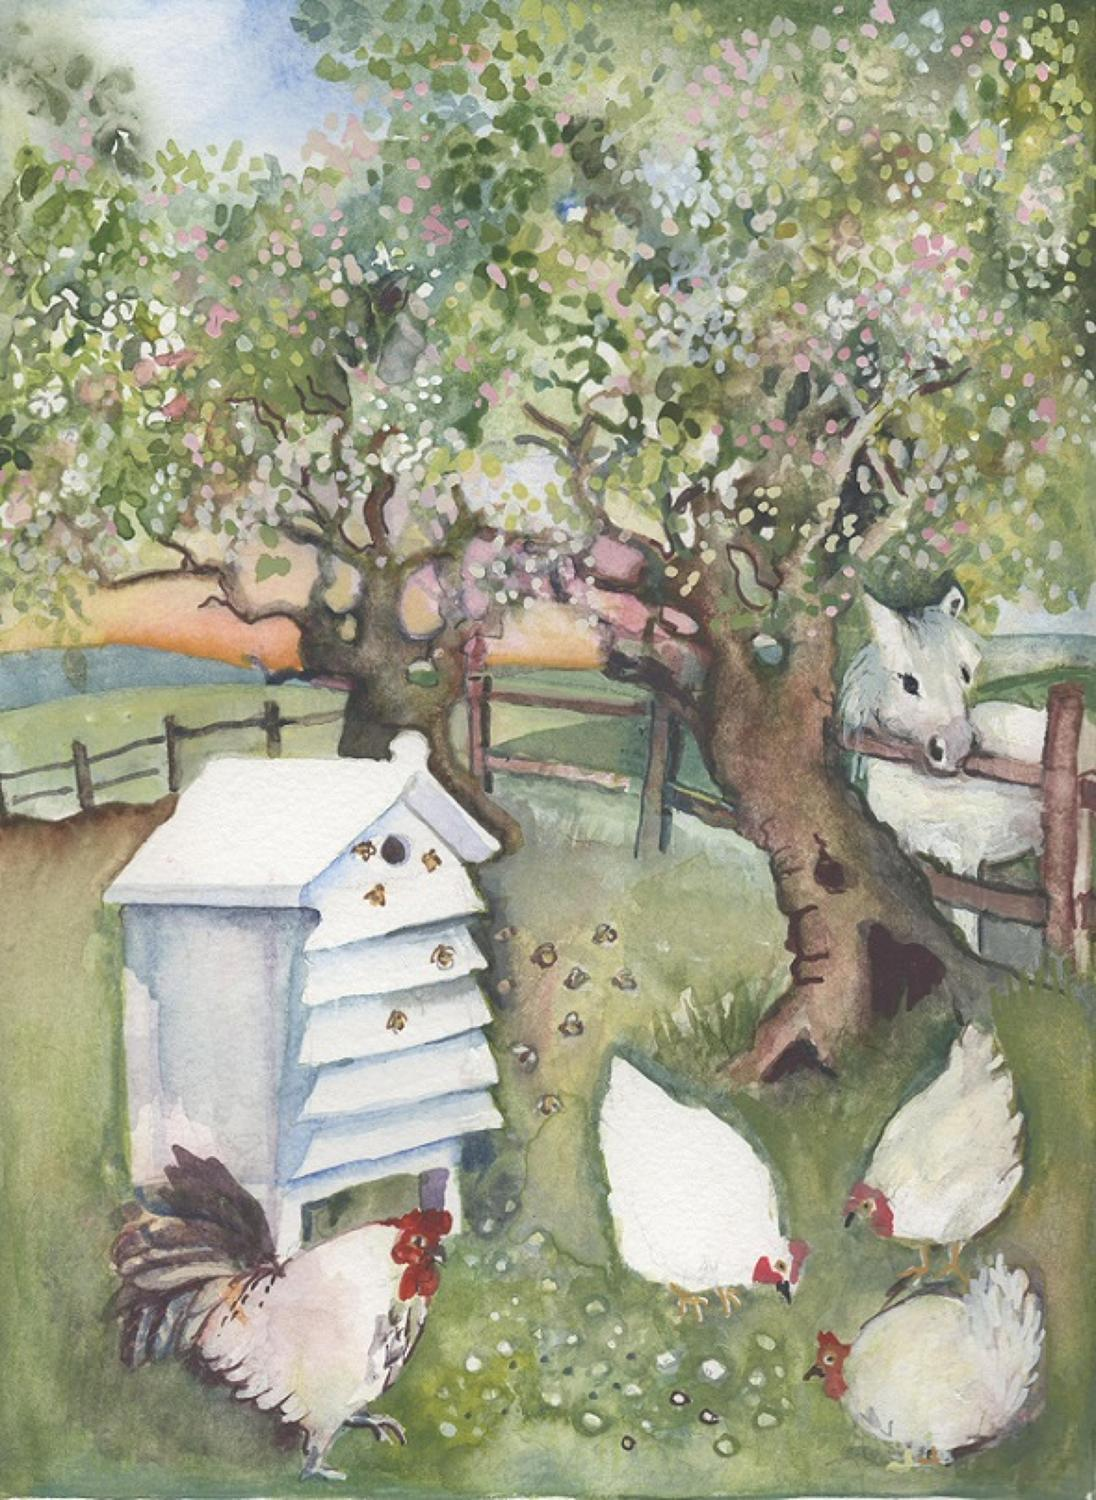 Bees & chickens in the orchard